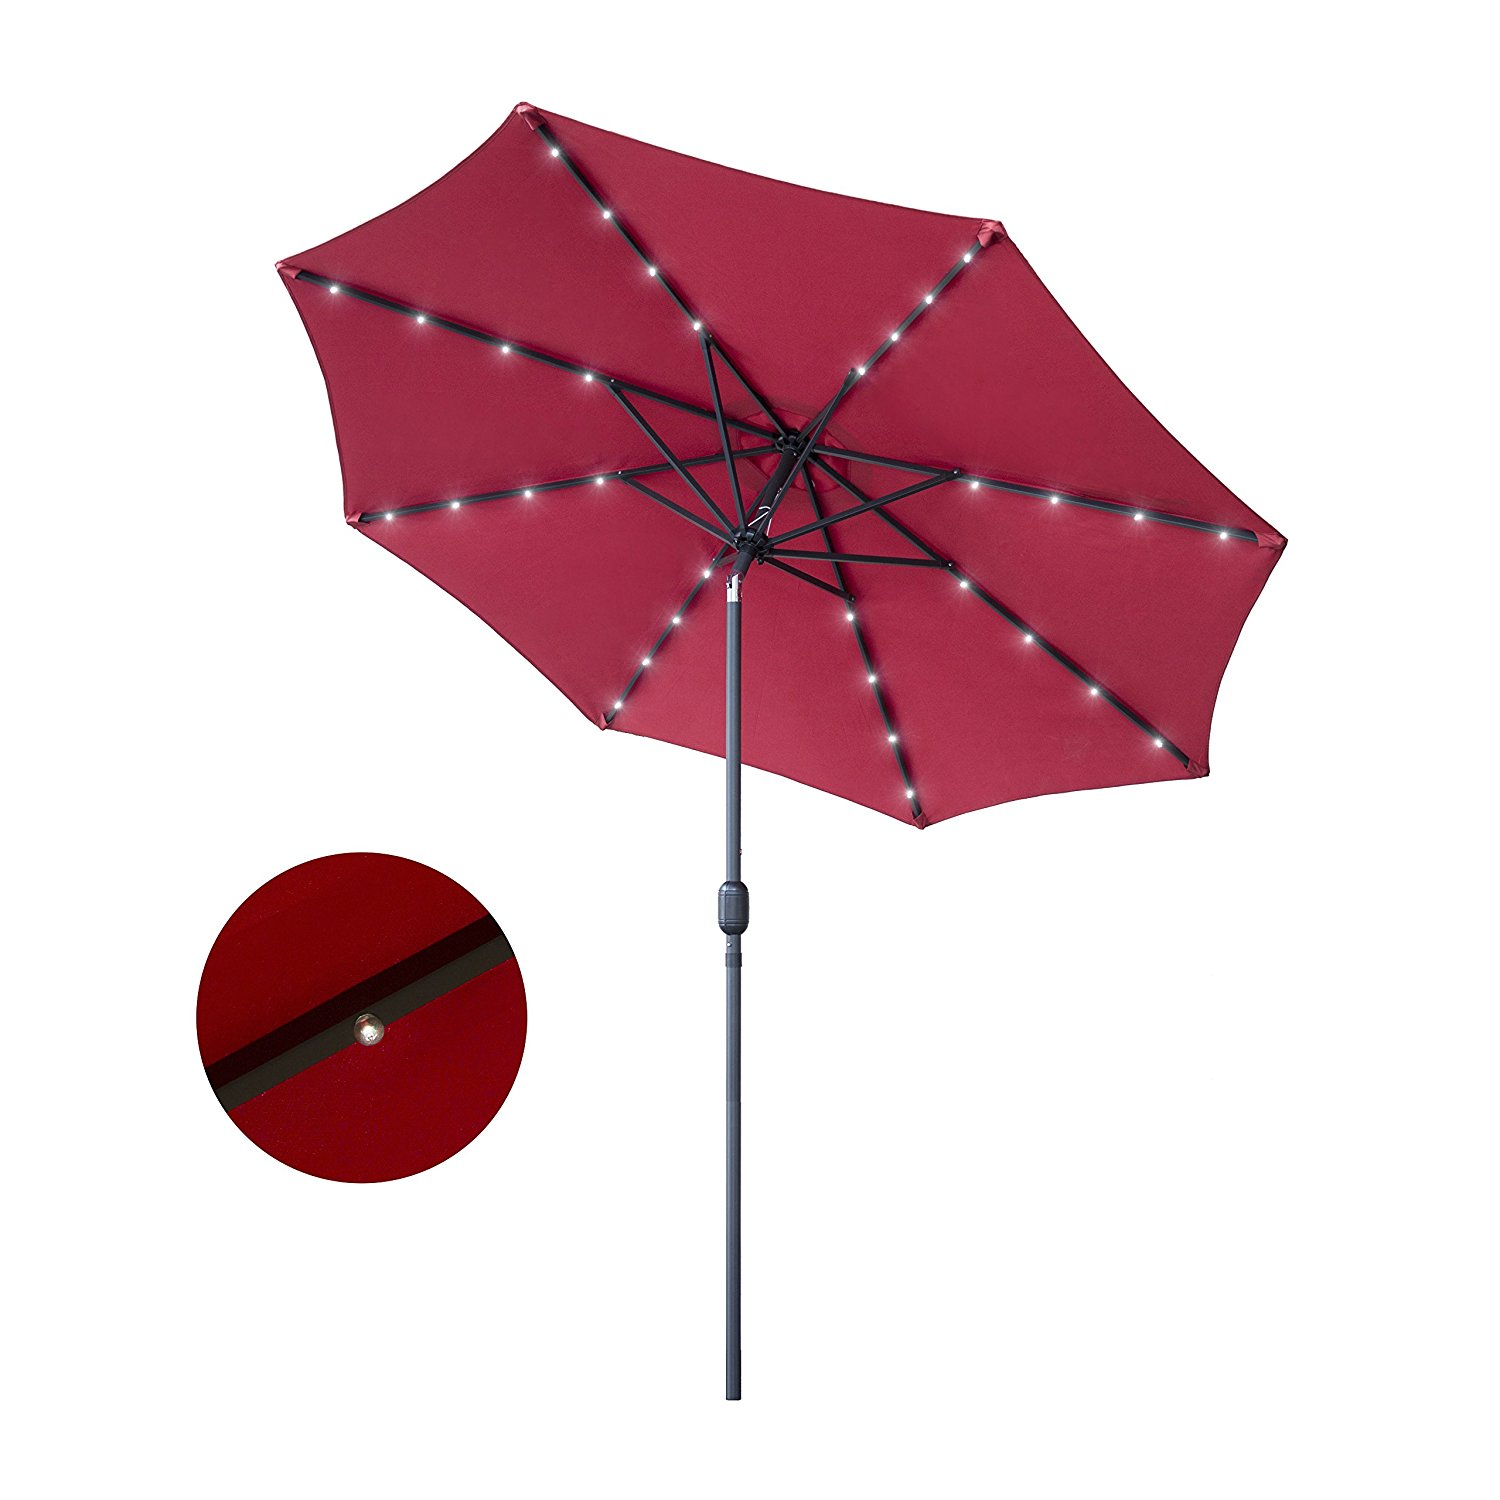 Departments  sc 1 st  Walmart : fade resistant patio umbrella - thejasonspencertrust.org